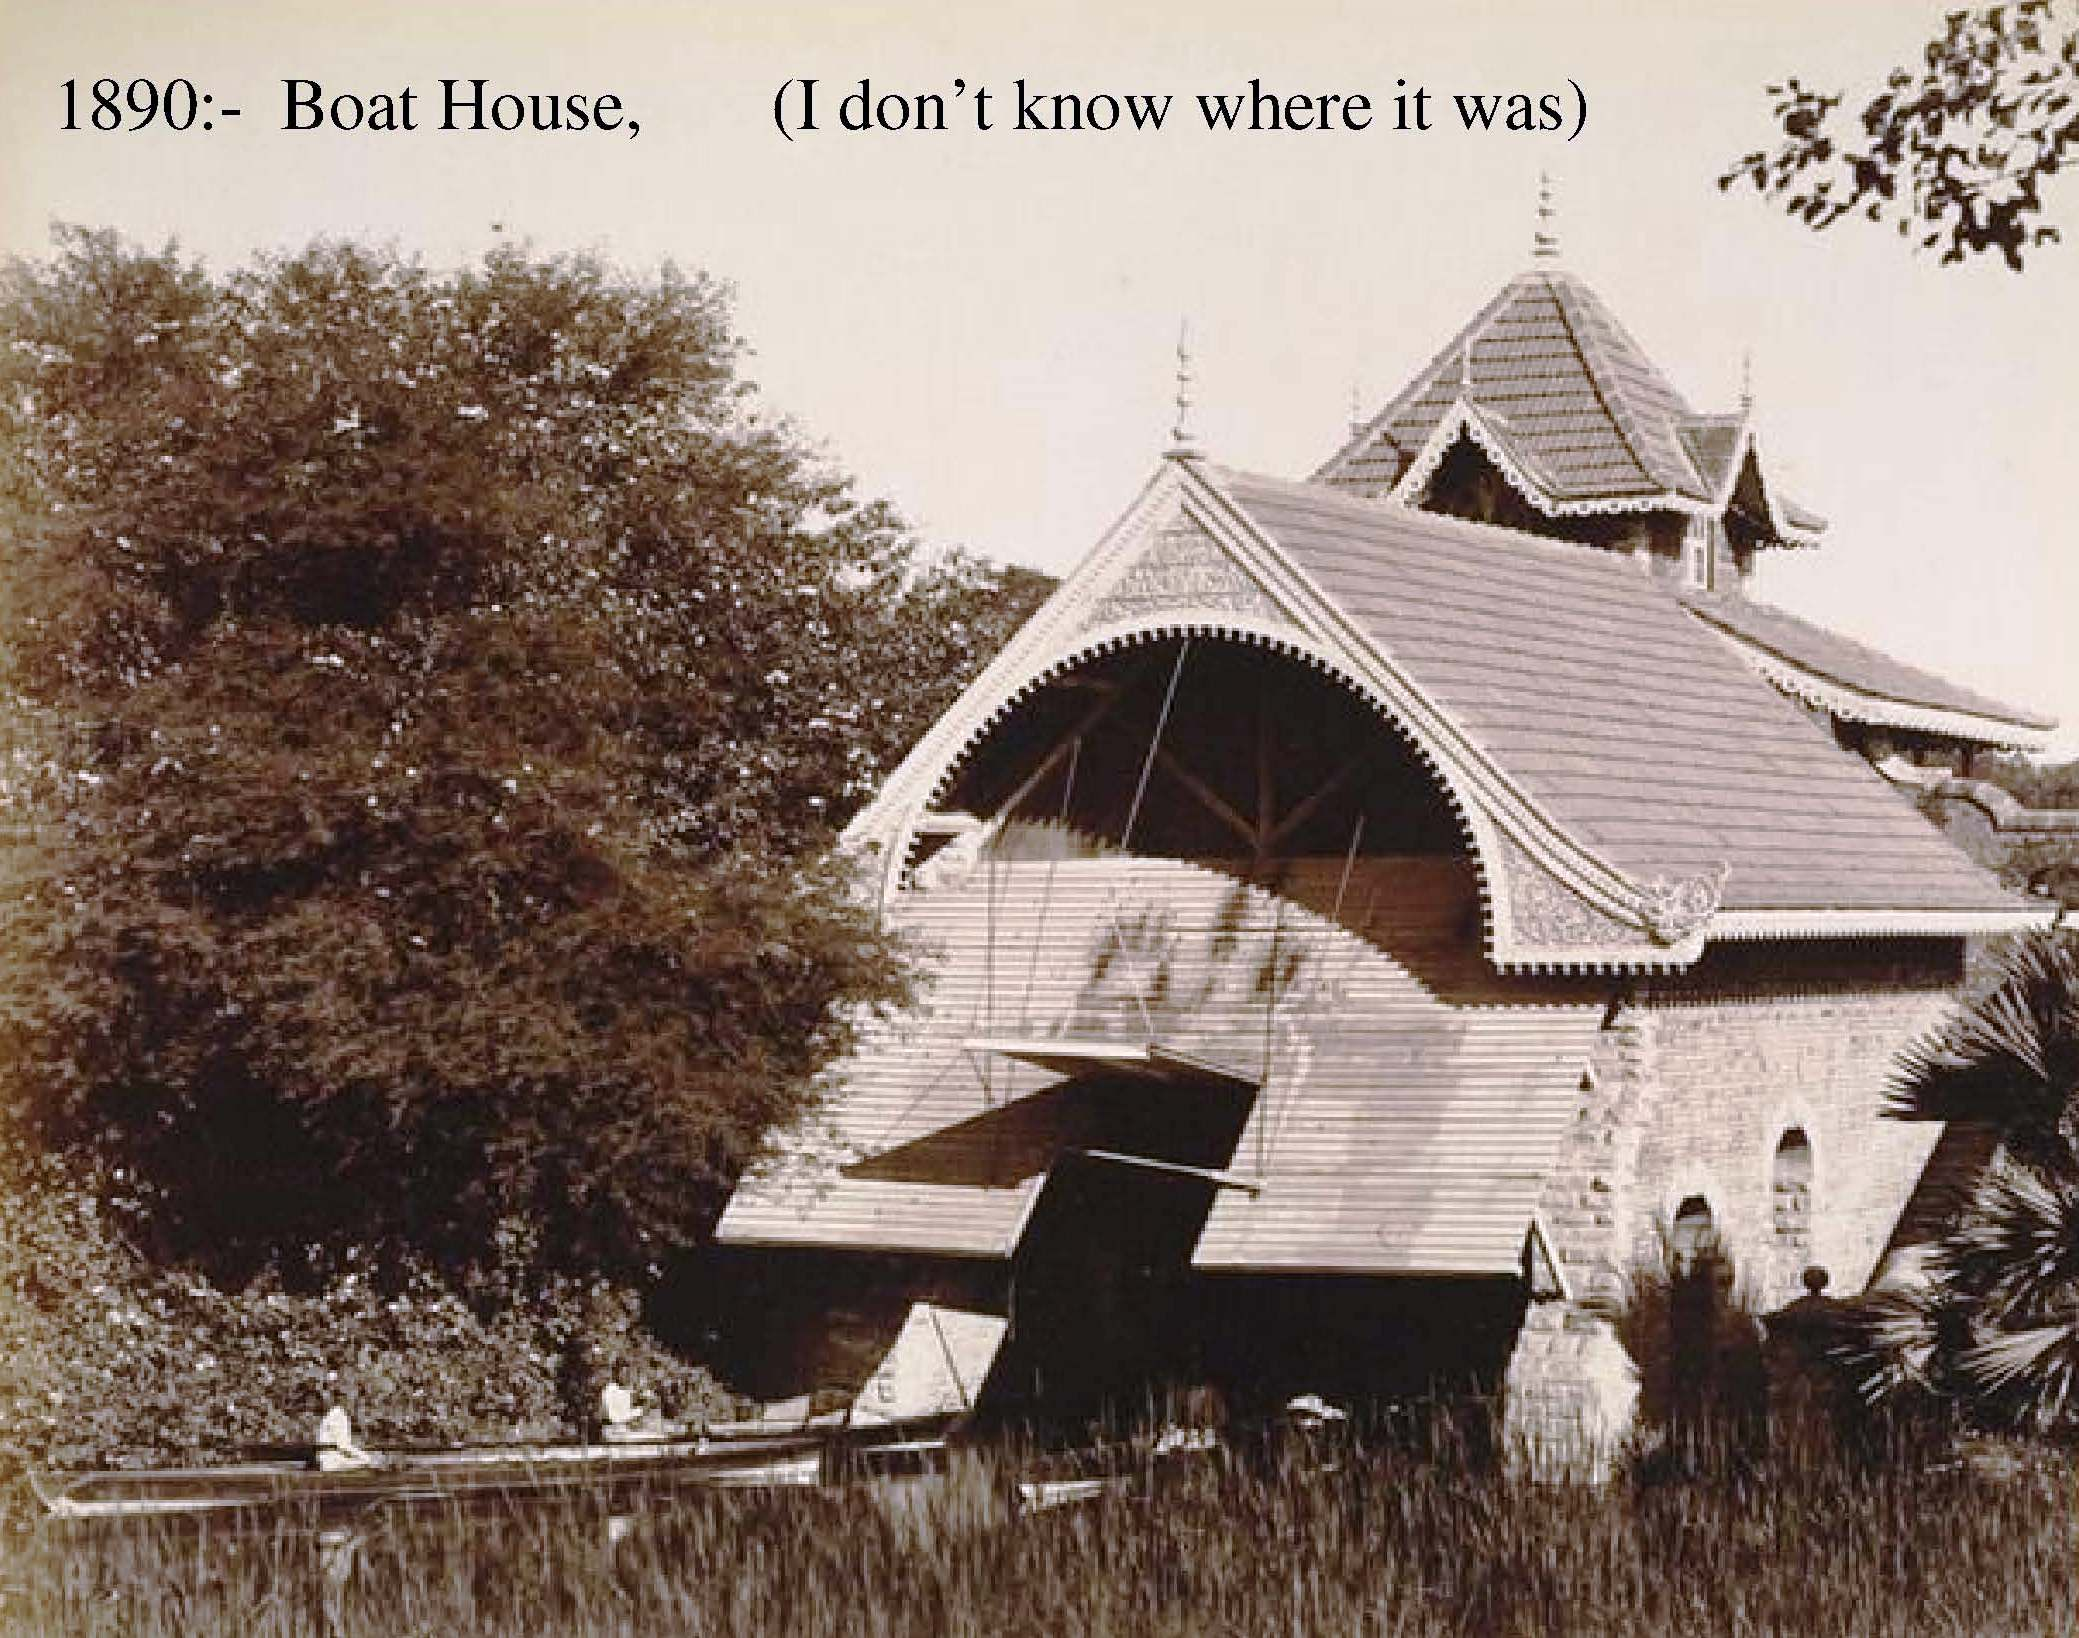 1890: Boat House. (recently not known)